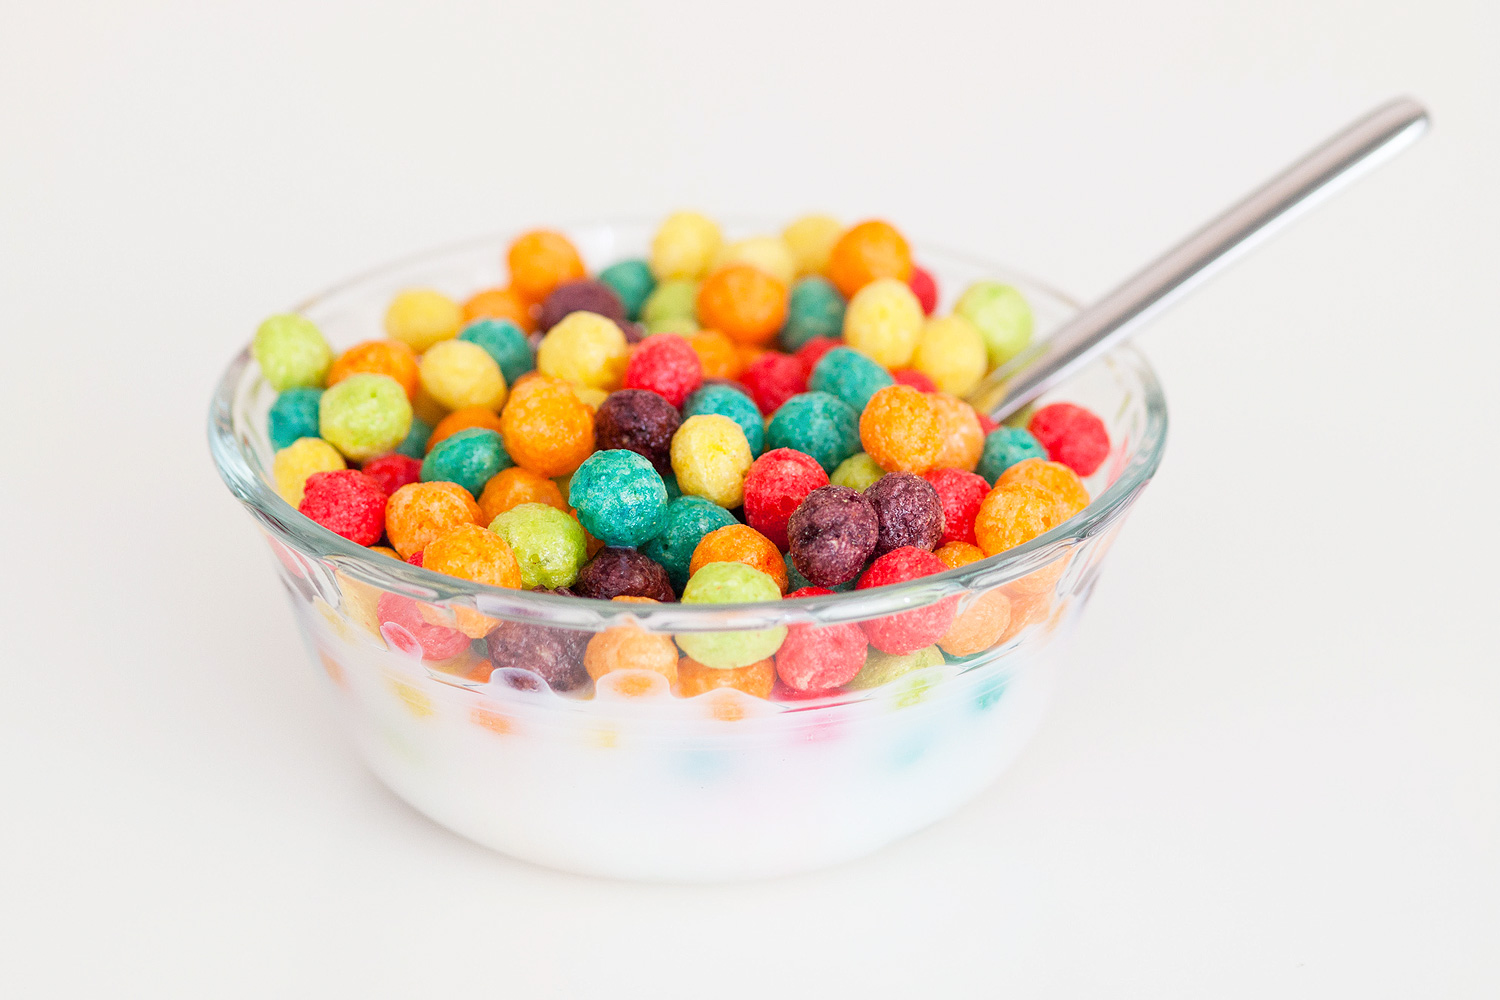 A box of colourful Trix cereal, a kiddie breakfast cereal produced by General Mills, Inc.